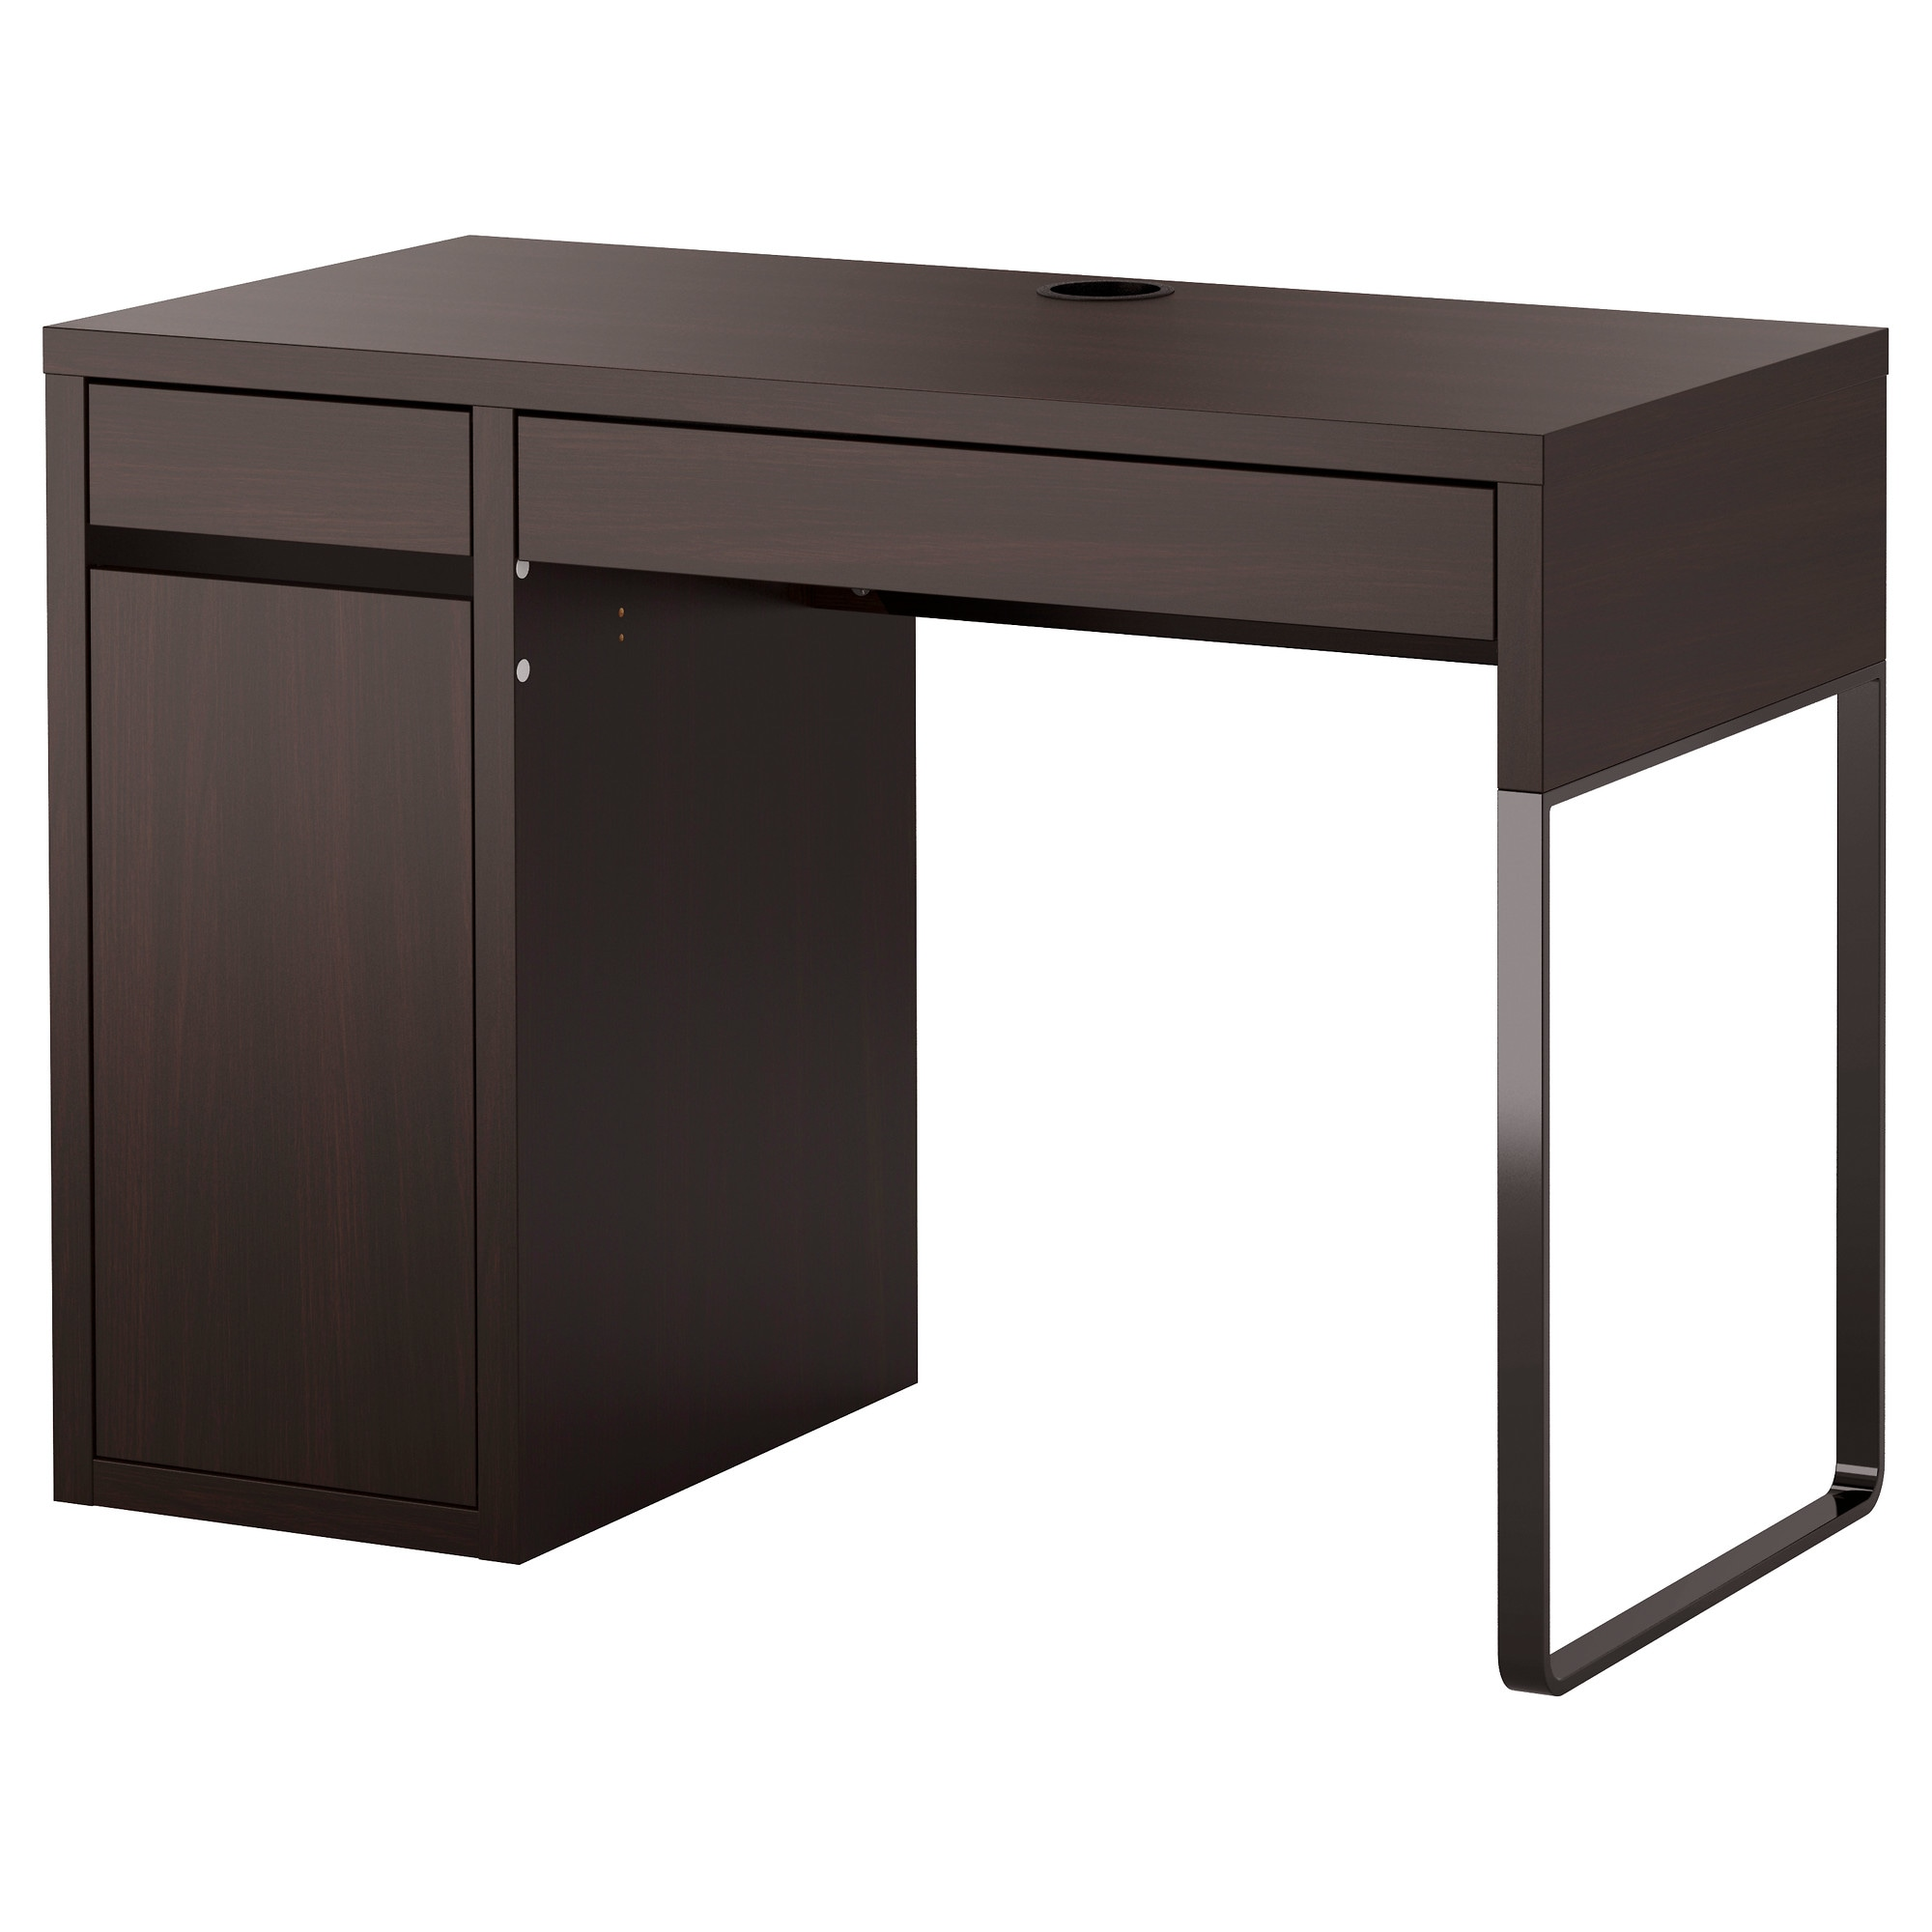 Desk Simple Pleasing Micke Desk  Blackbrown  Ikea Inspiration Design